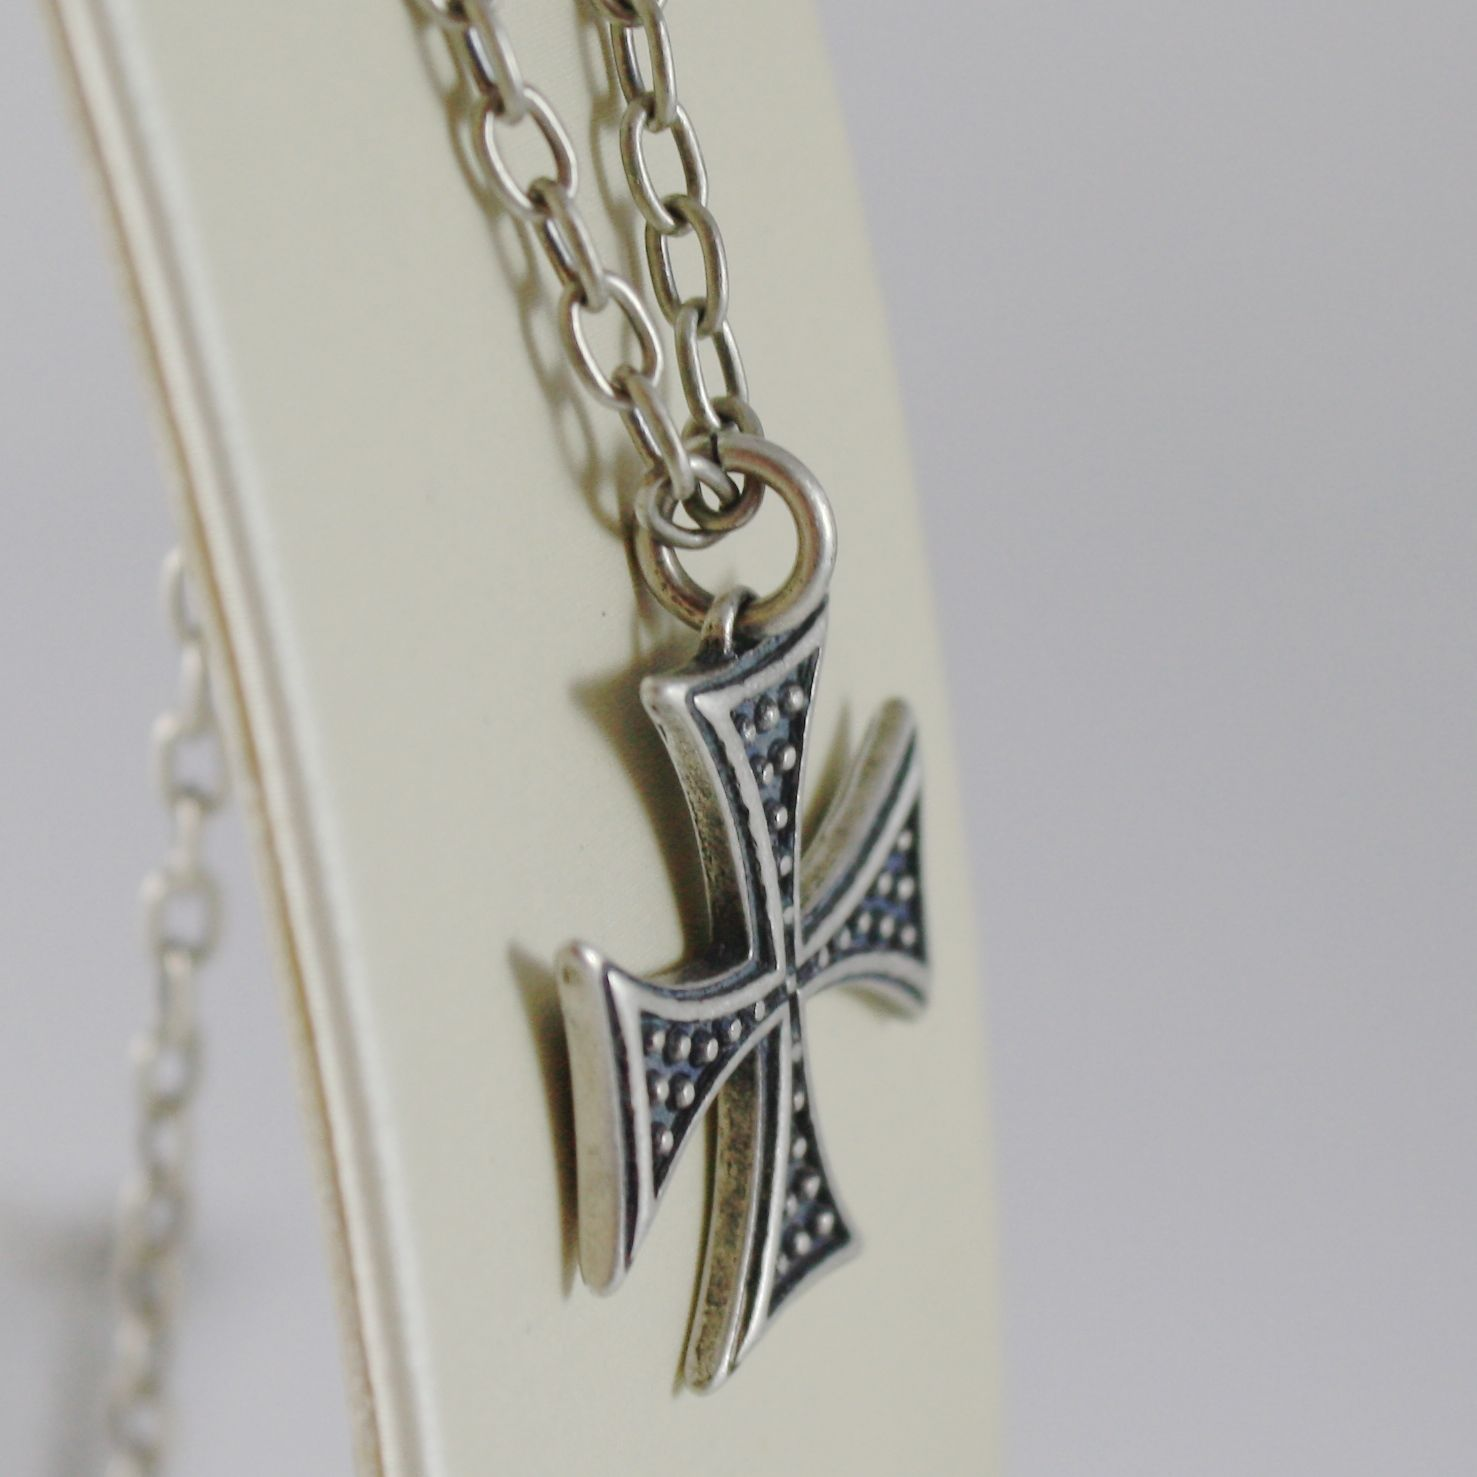 925 BURNISHED SILVER NECKLACE VINTAGE STYLE CROSS PENDANT & CHAIN MADE IN ITALY